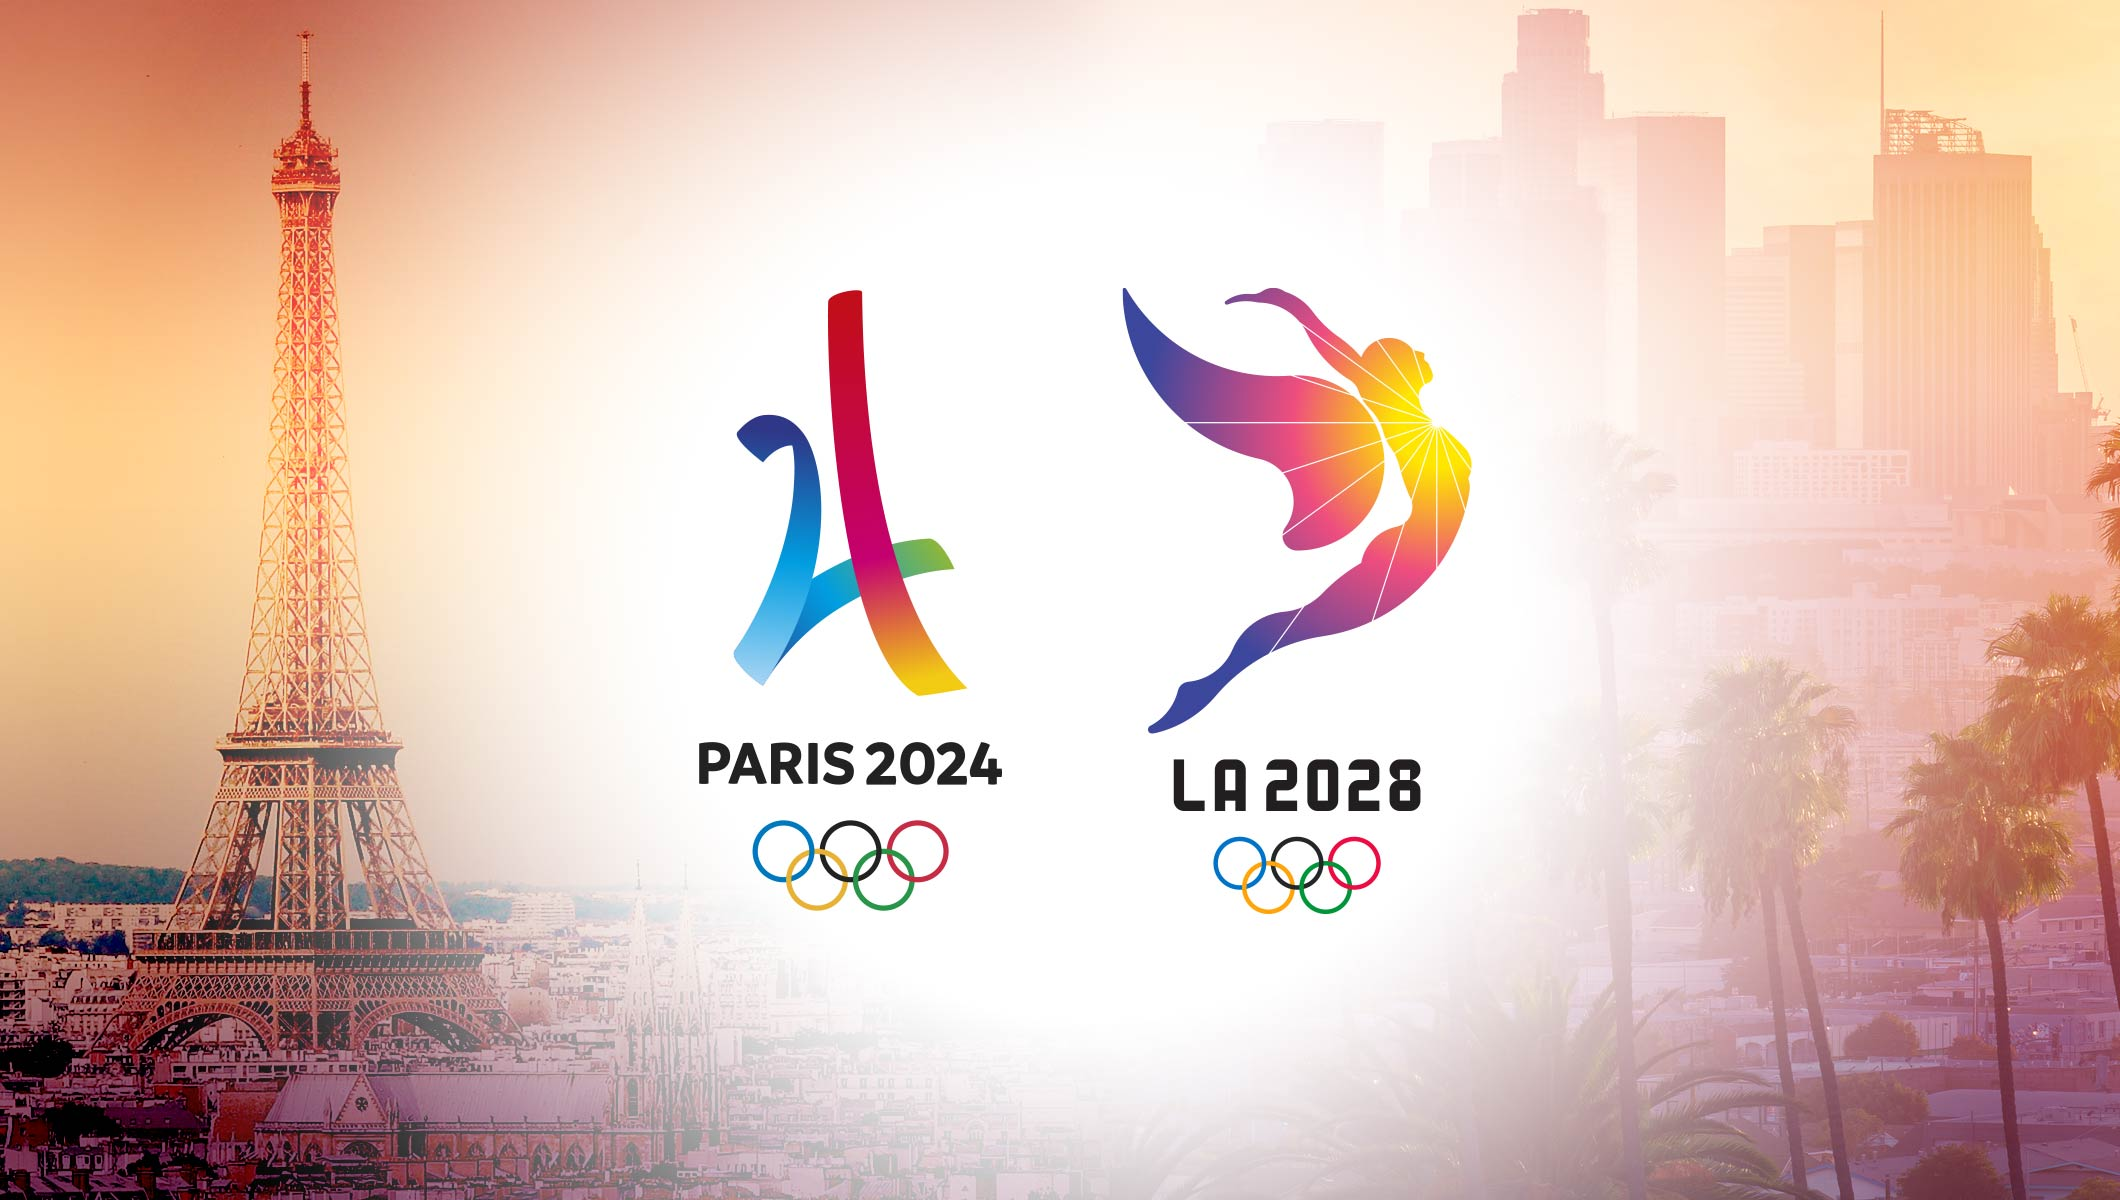 Paris 2024 and LA 2028 is 'win-win-win' says IOC President